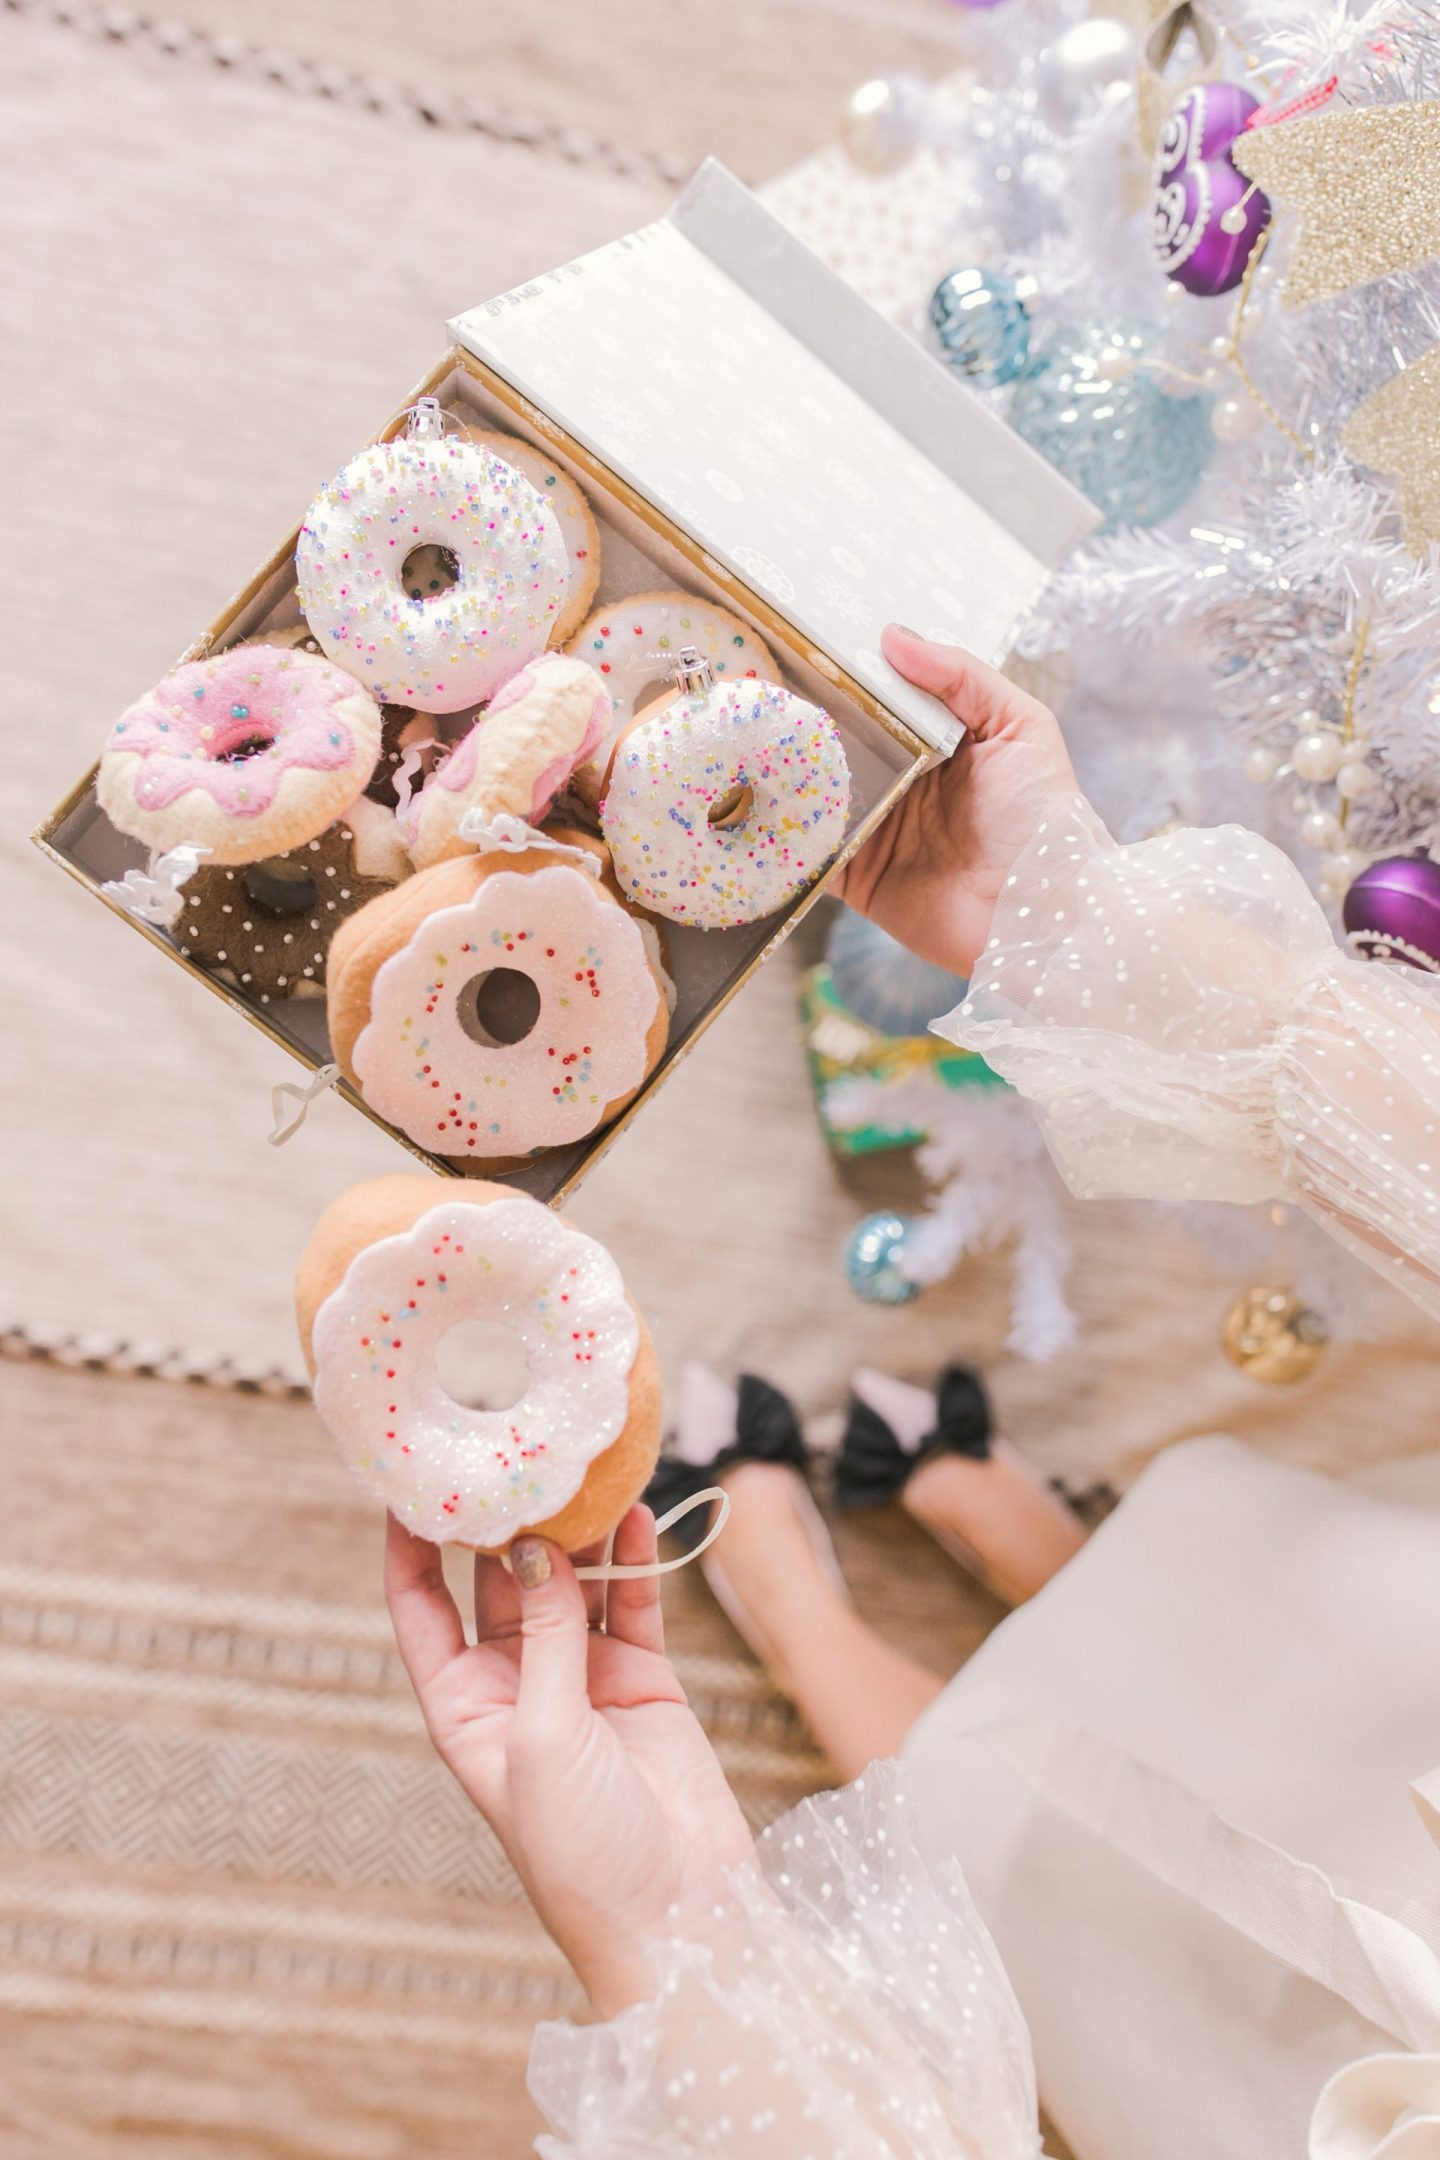 Cute, handmade donut ornaments for your themed Christmas tree